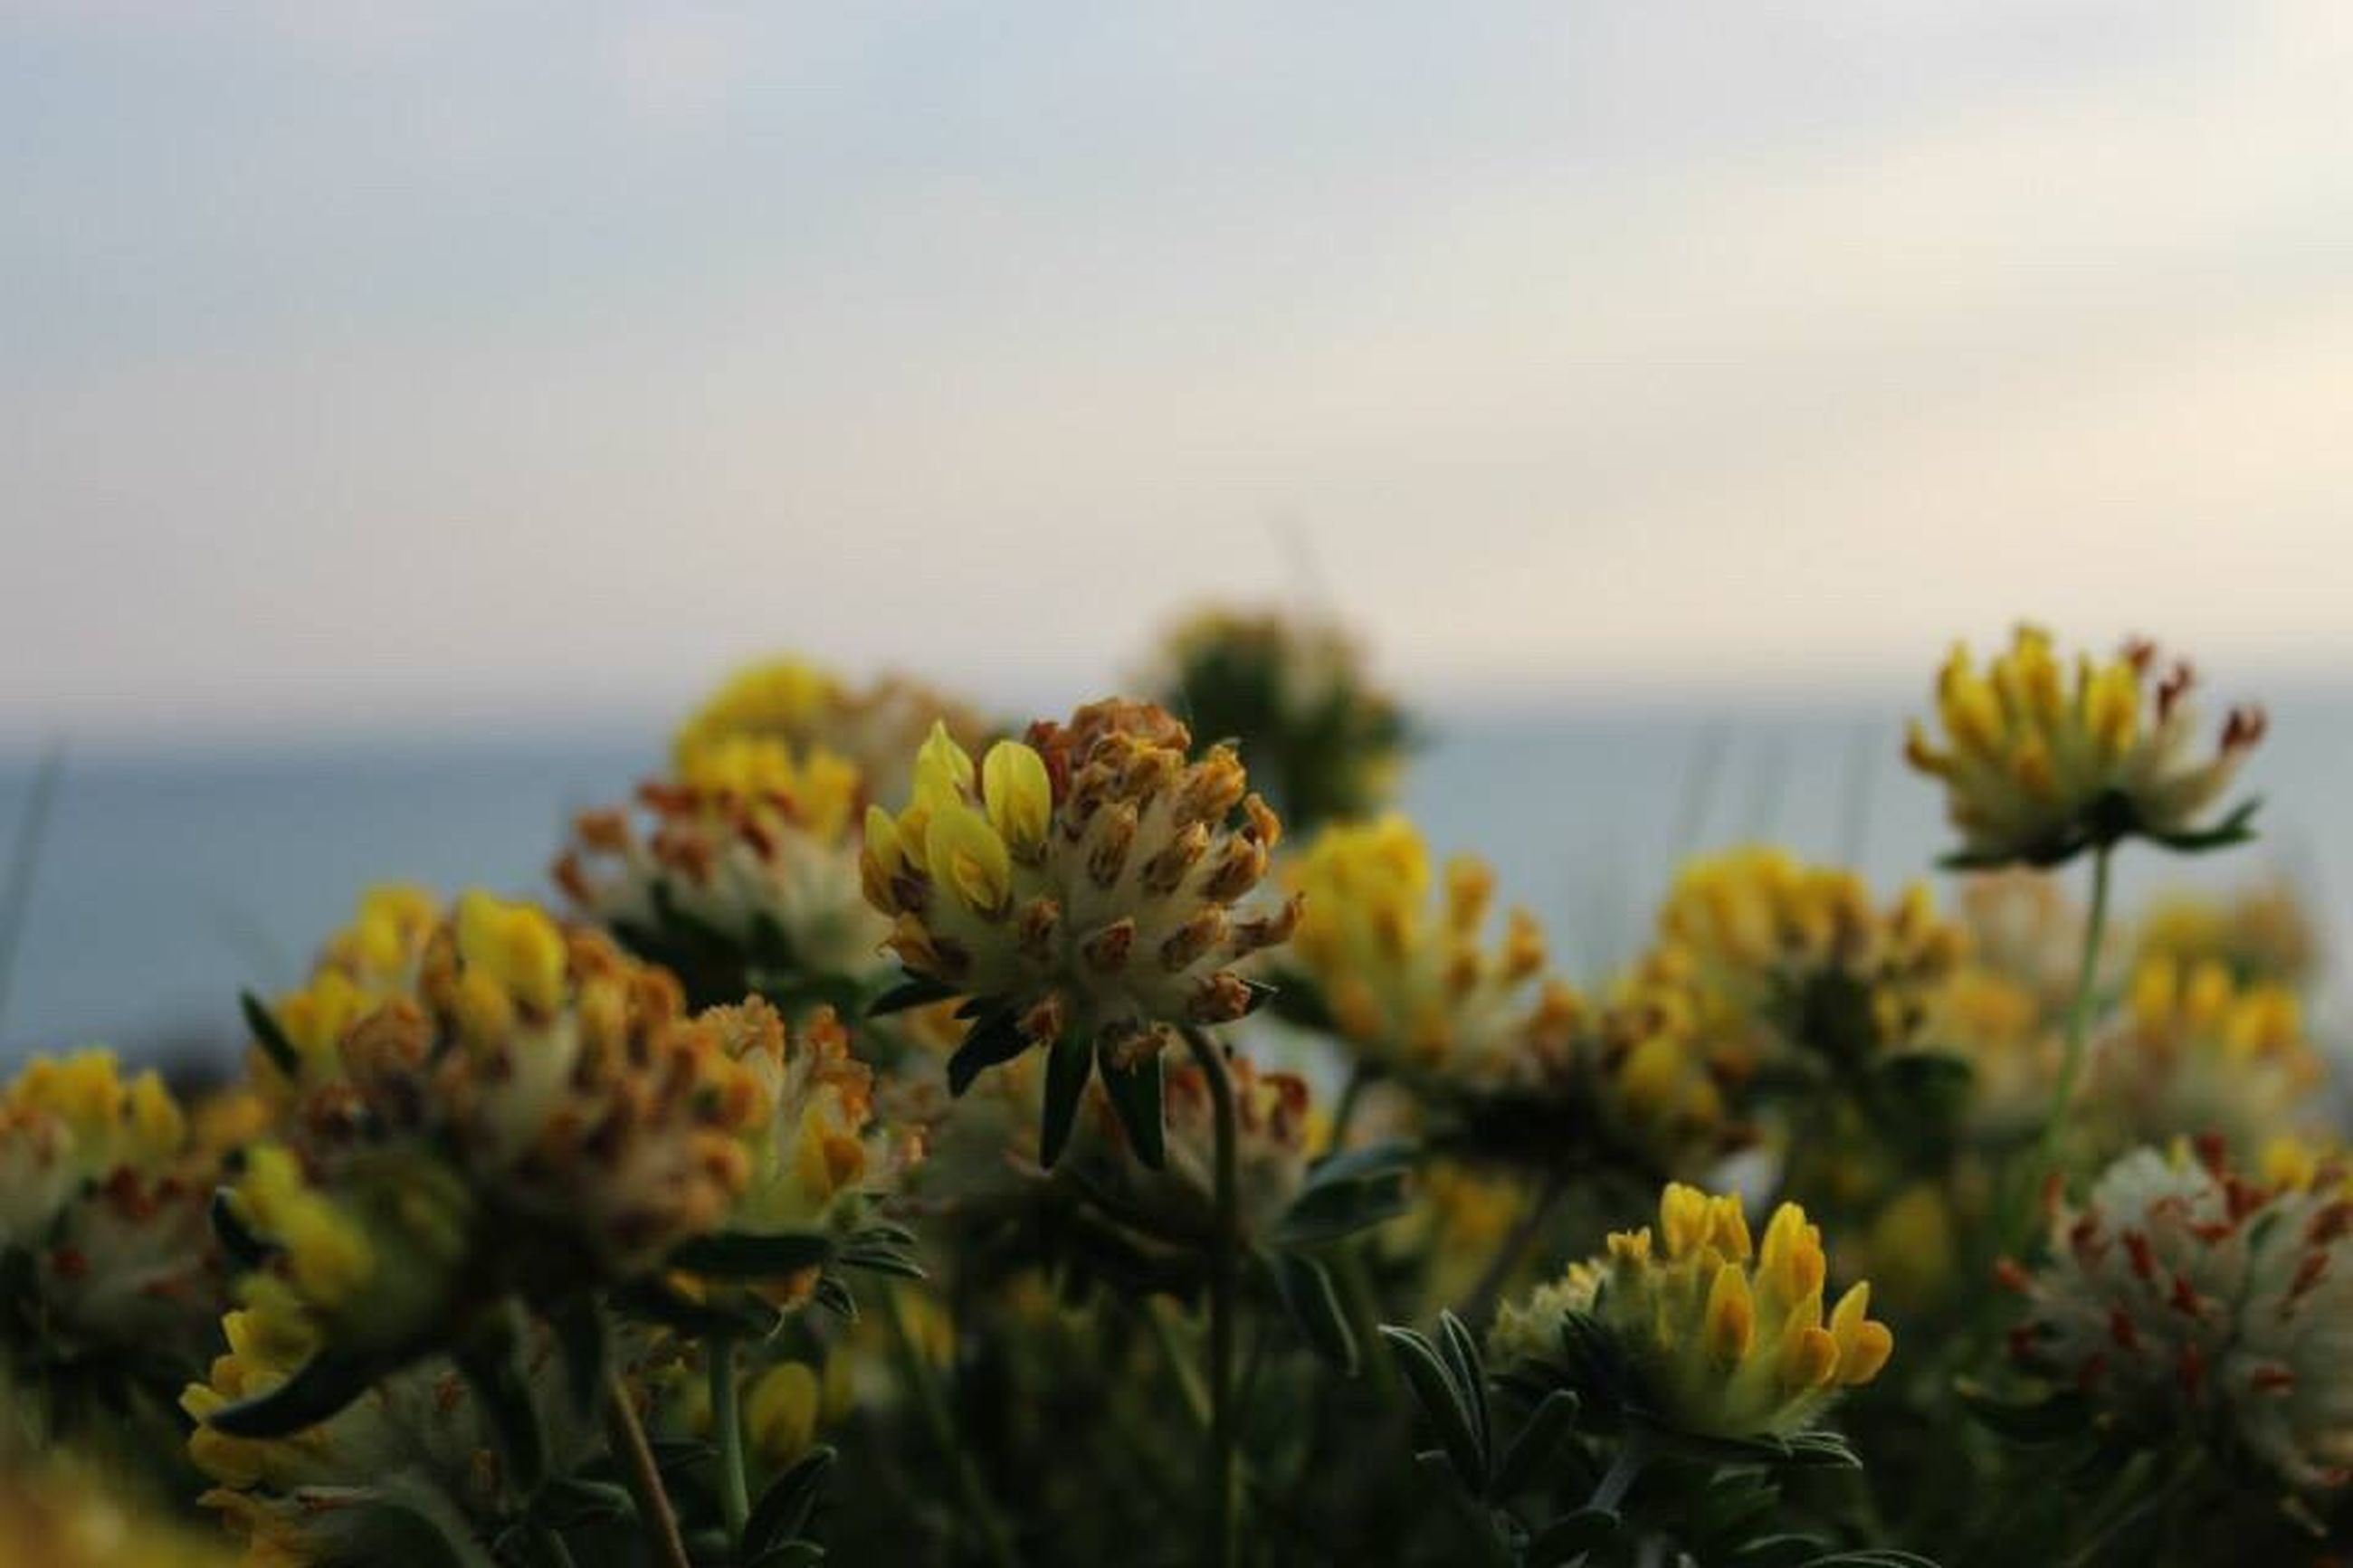 nature, growth, plant, focus on foreground, beauty in nature, flower, close-up, sea, outdoors, no people, sky, fragility, day, water, freshness